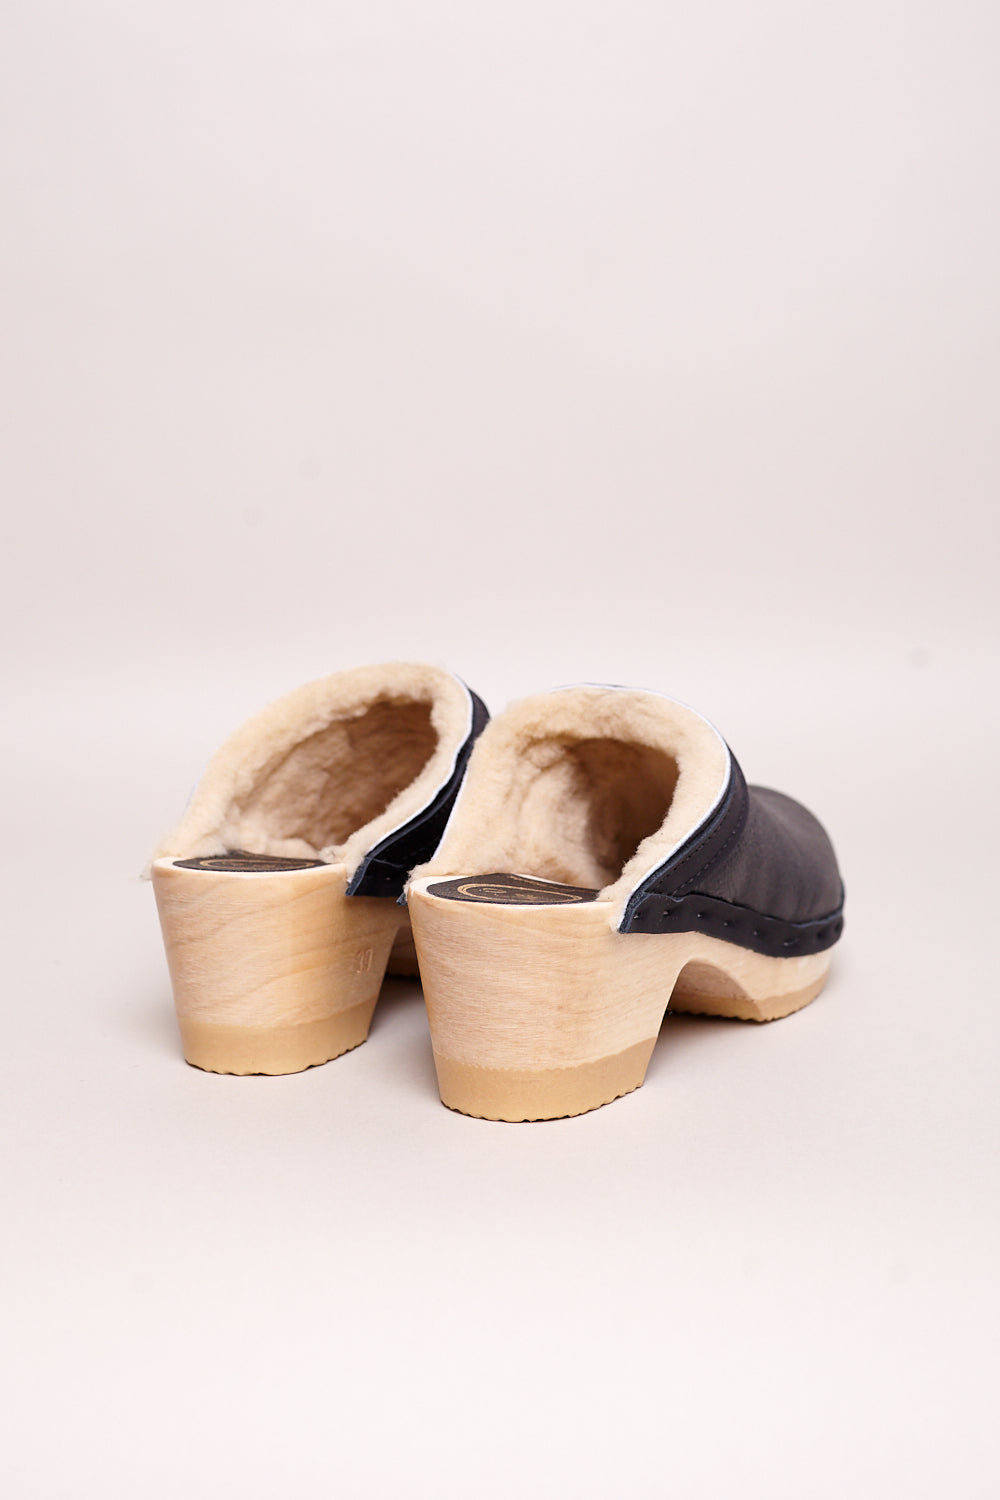 No.6 Dakota Shearling Clog on Mid Heel in Ink Aviator - Vert & Vogue